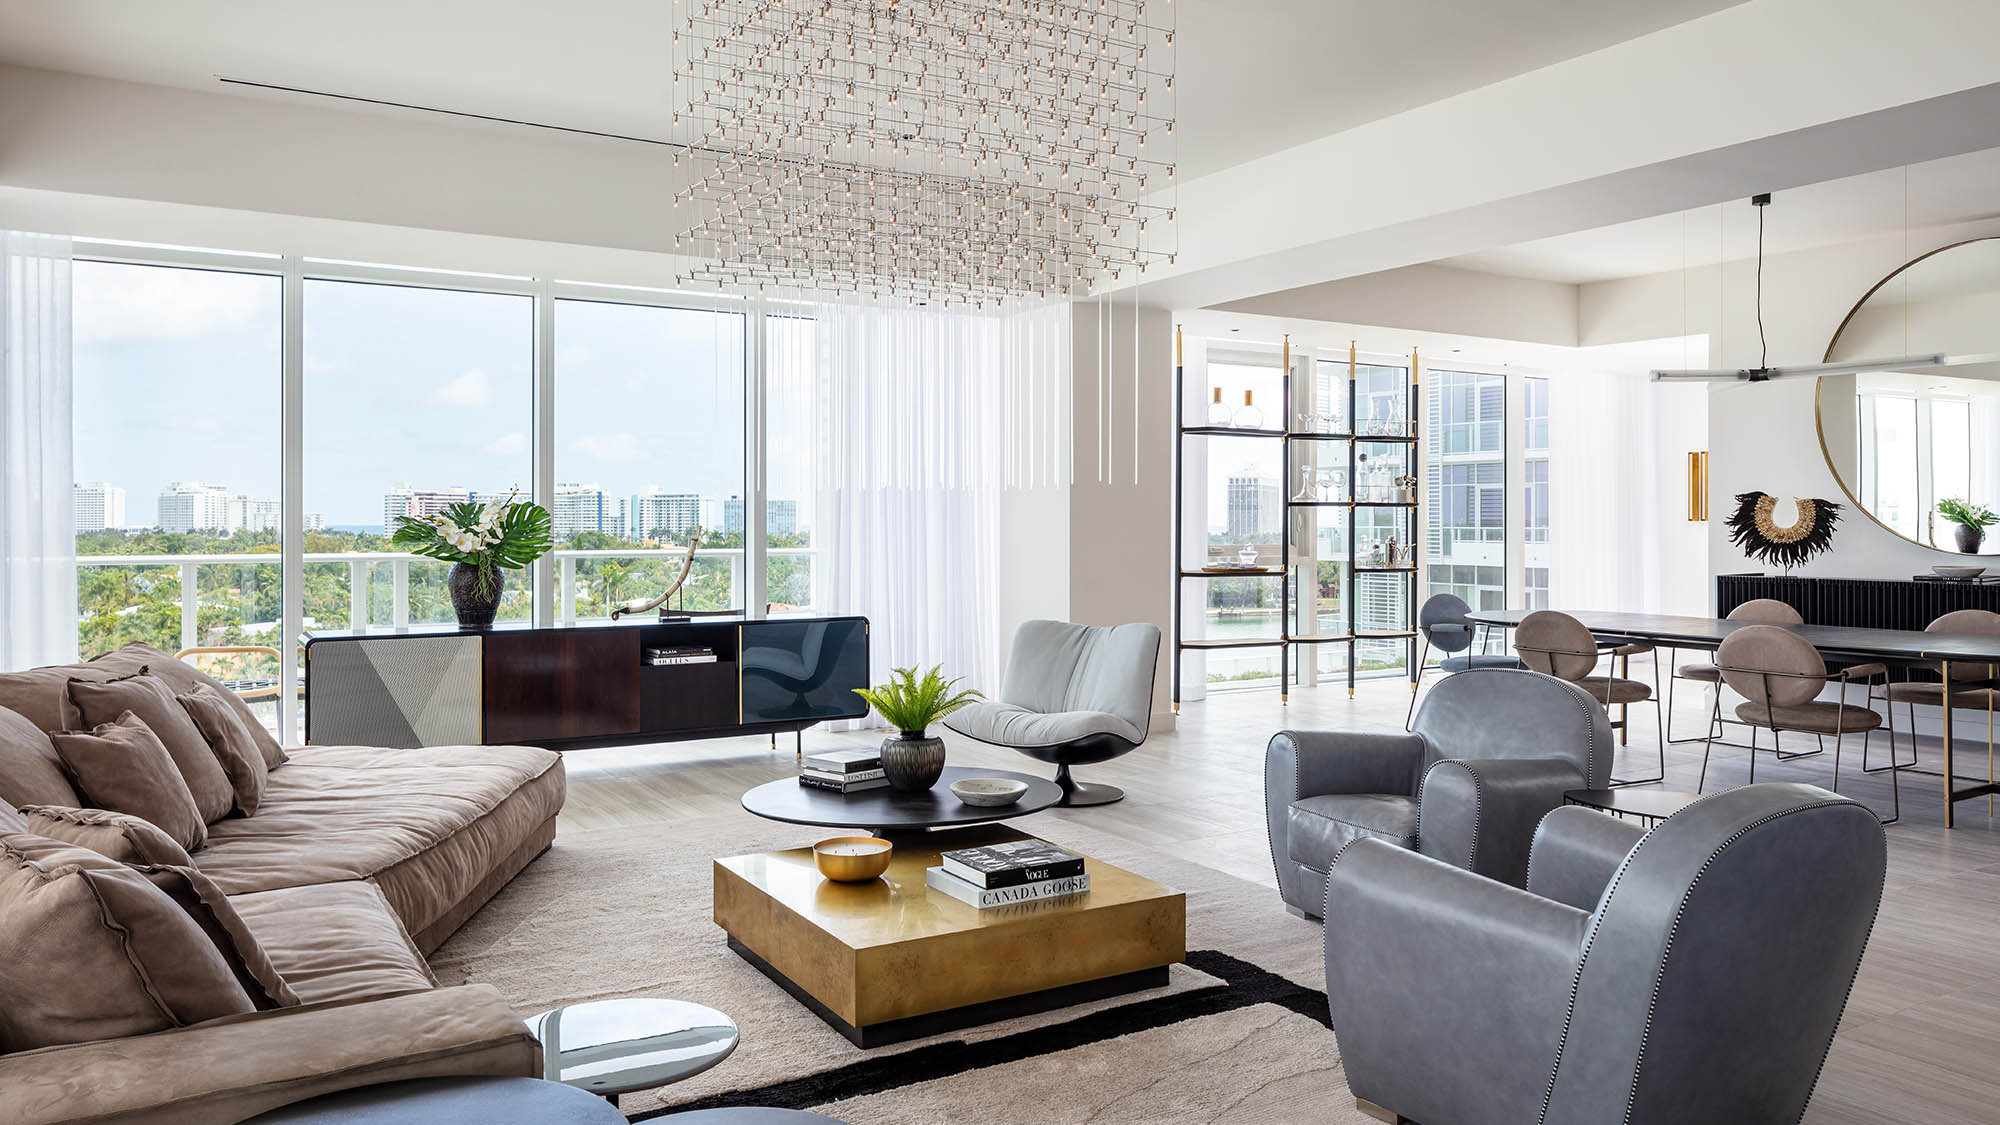 New Miami condos at The Ritz-Carlton Residences, Miami Beach